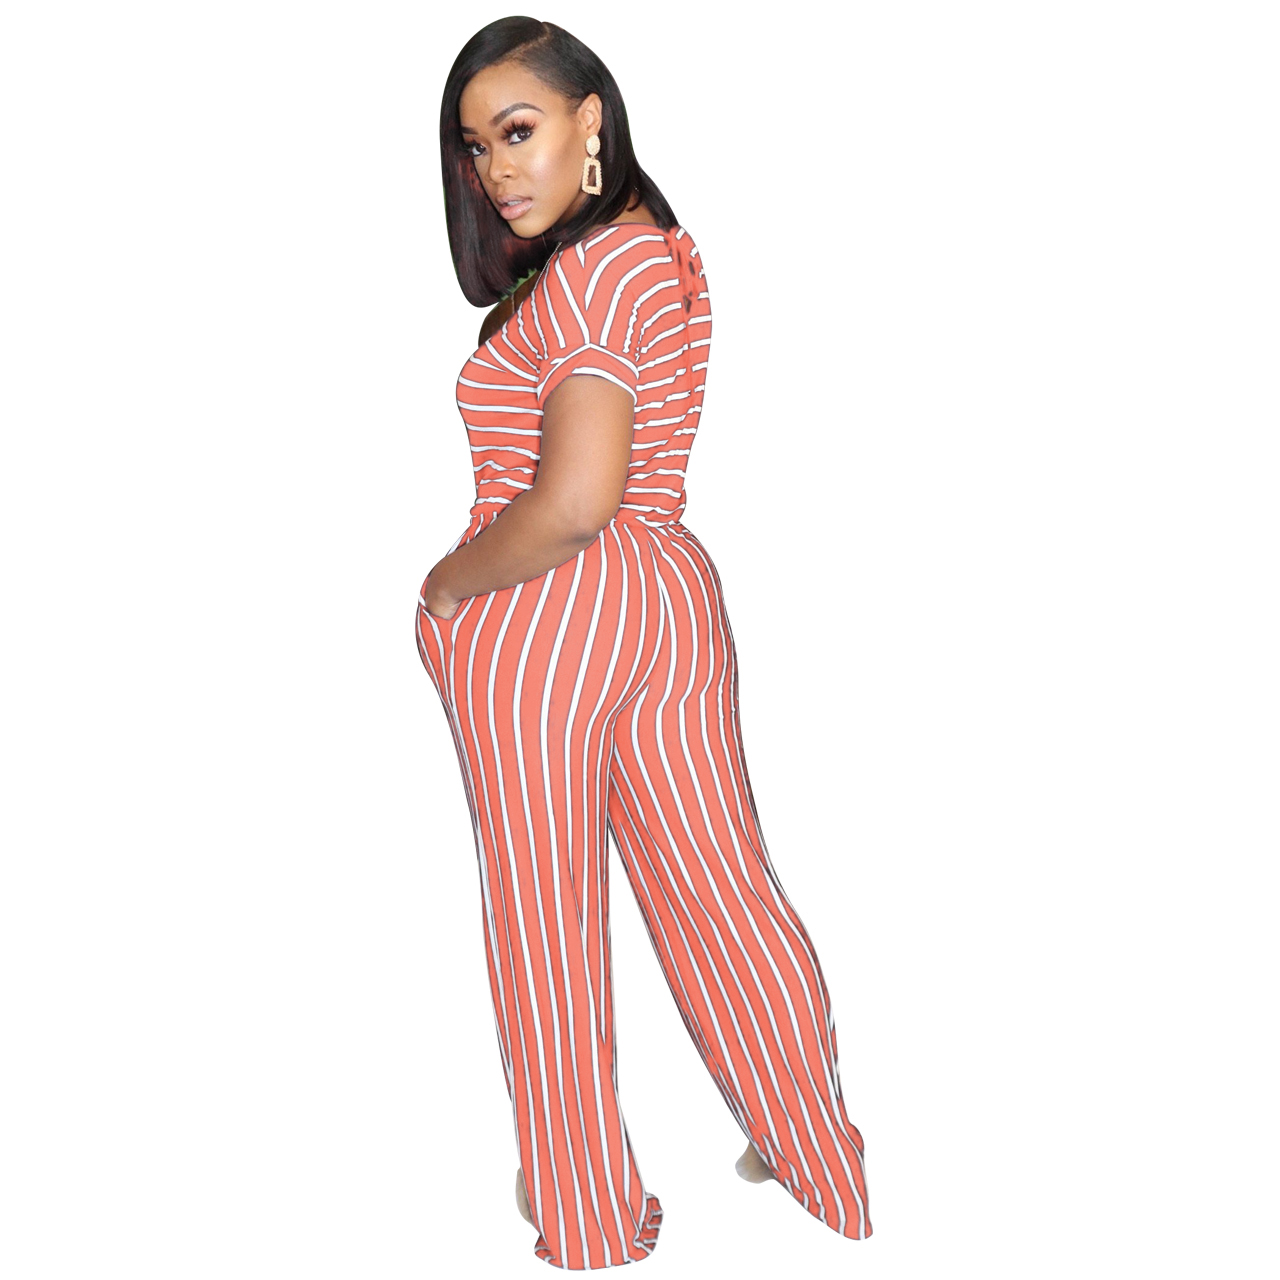 H49d578a13bd4408c8334152f6168f155v - Fashion Women Stripes Jumpsuits Summer New Arrival Short Sleeves Crew Neck Women Casual Rompers Loose Daily Wear Outfits